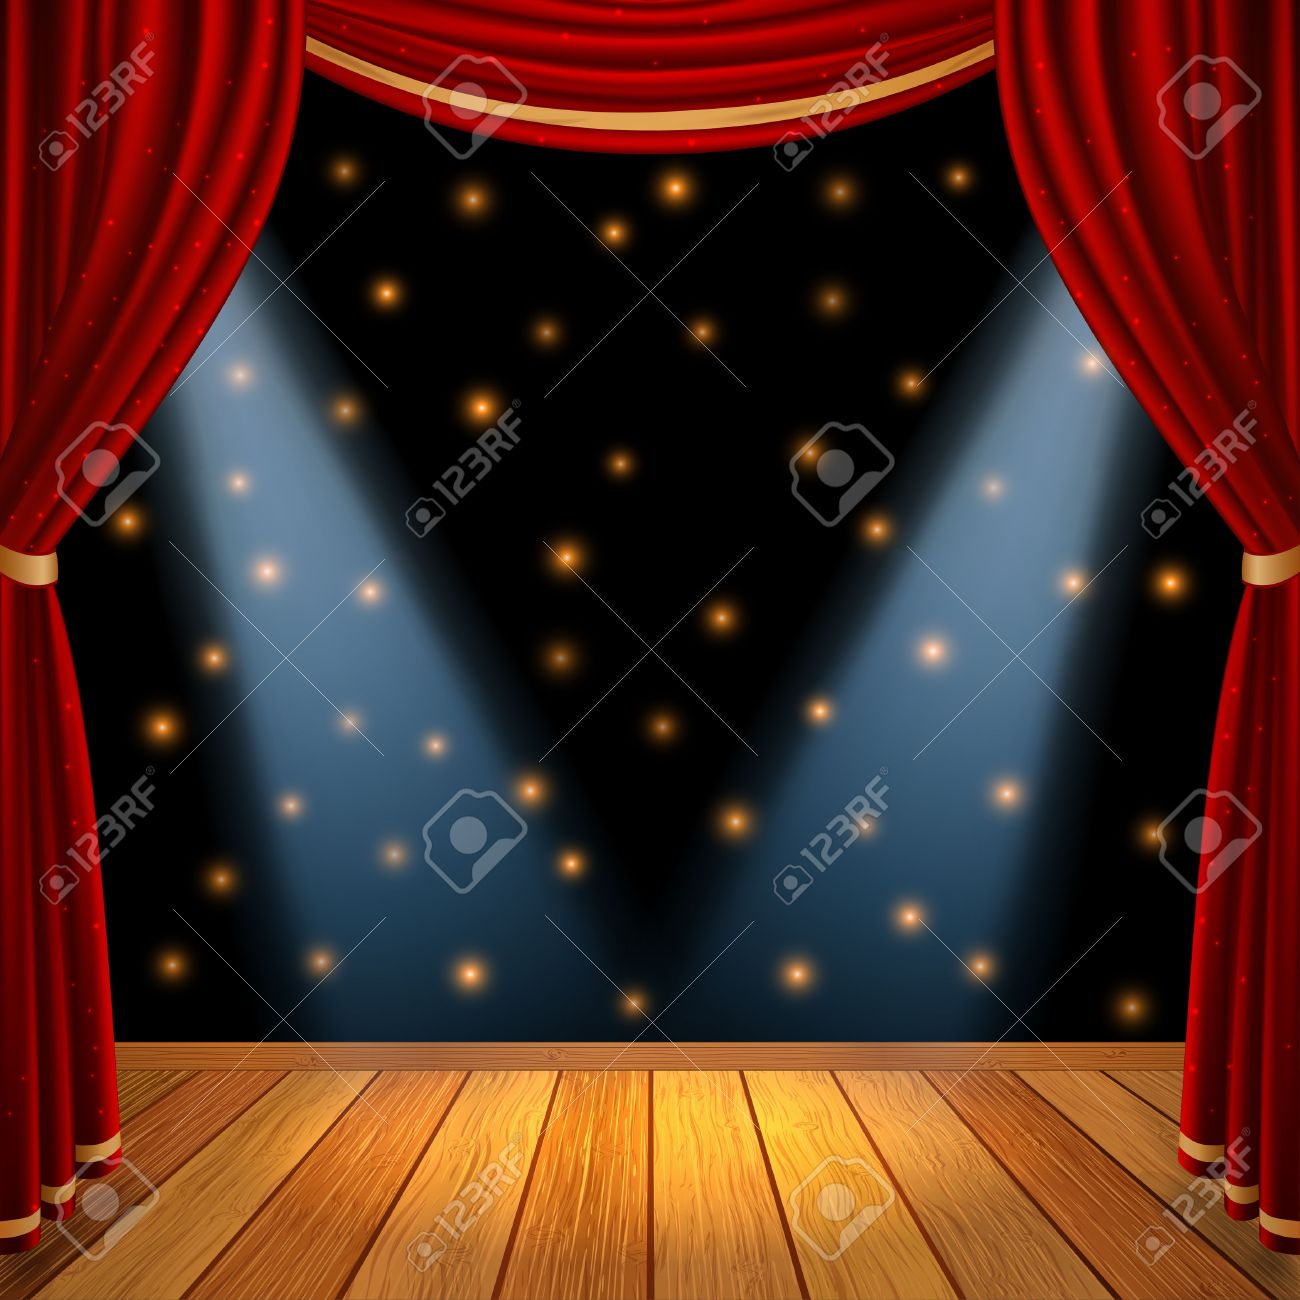 Red curtains with spotlight - Empty Theatrical Scene Stage With Red Curtains Drapes And Brown Wooden Floor With Dramatic Spotlight In